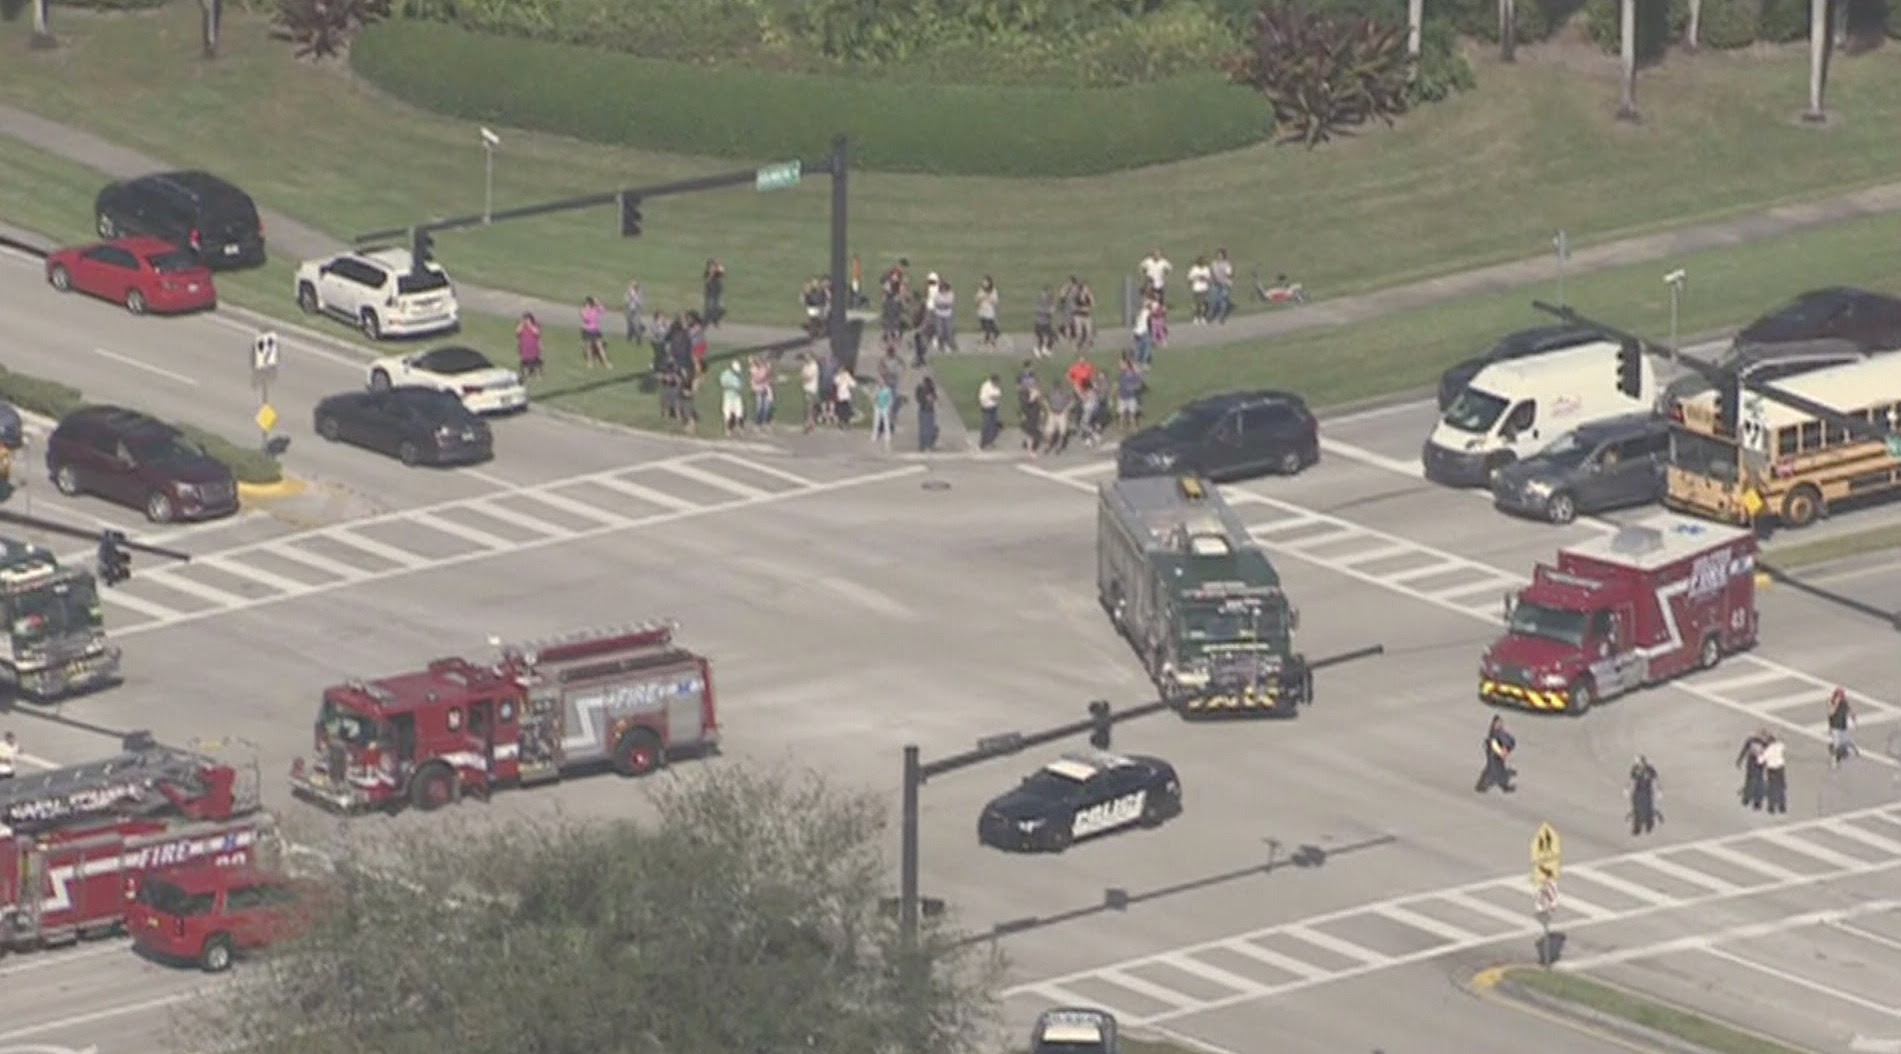 Suspect Apprehended in Ongoing Shooting in Florida High School